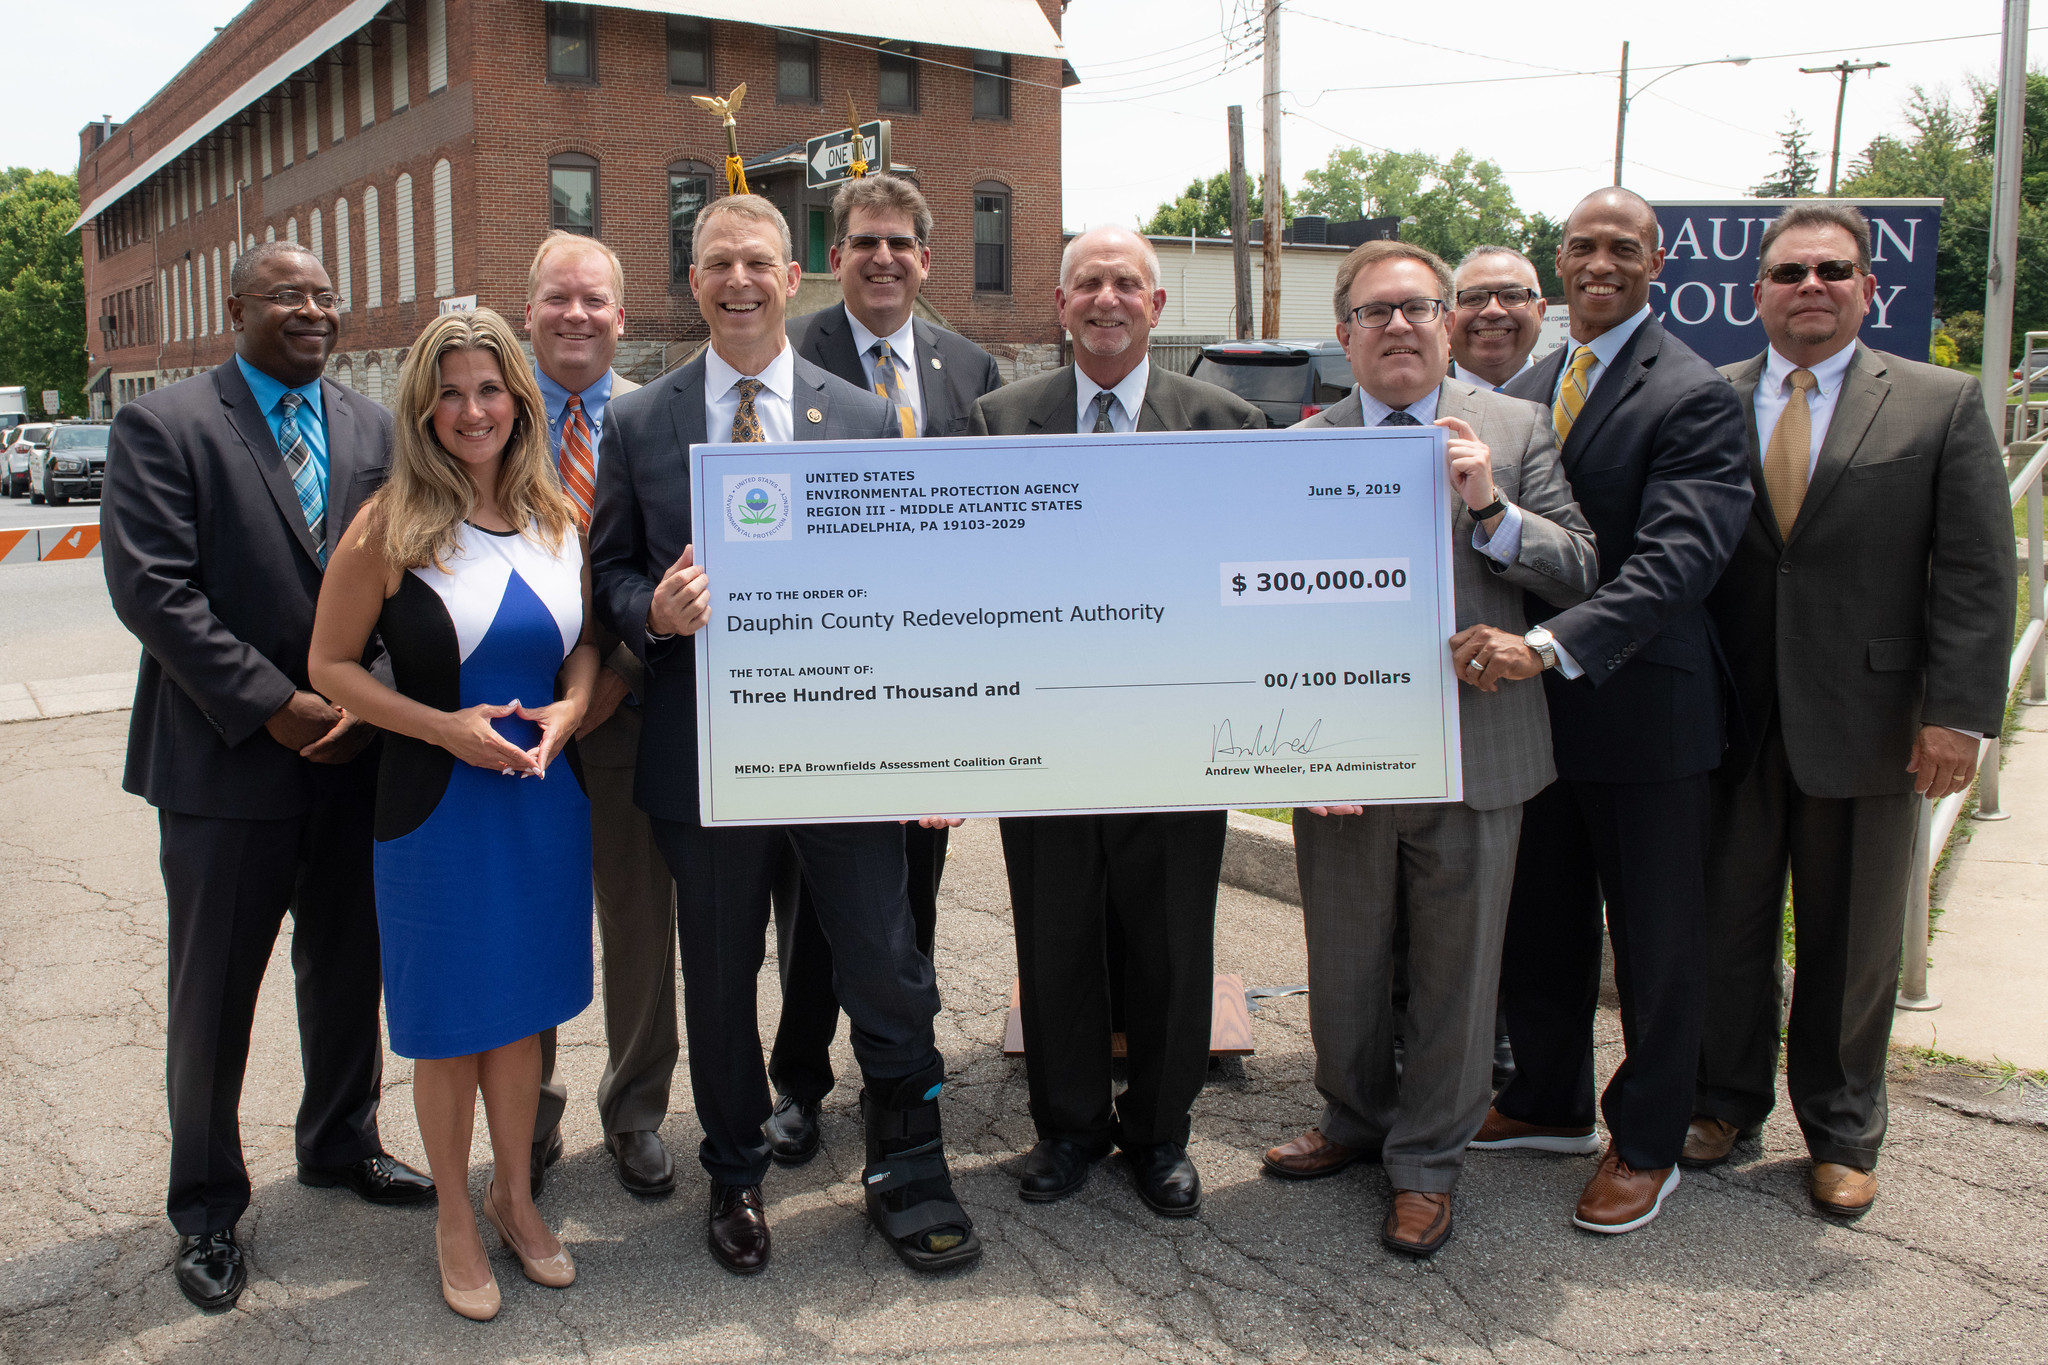 EPA Administrator Andrew Wheeler announces funding for Brownfields in Dauphin County, PA